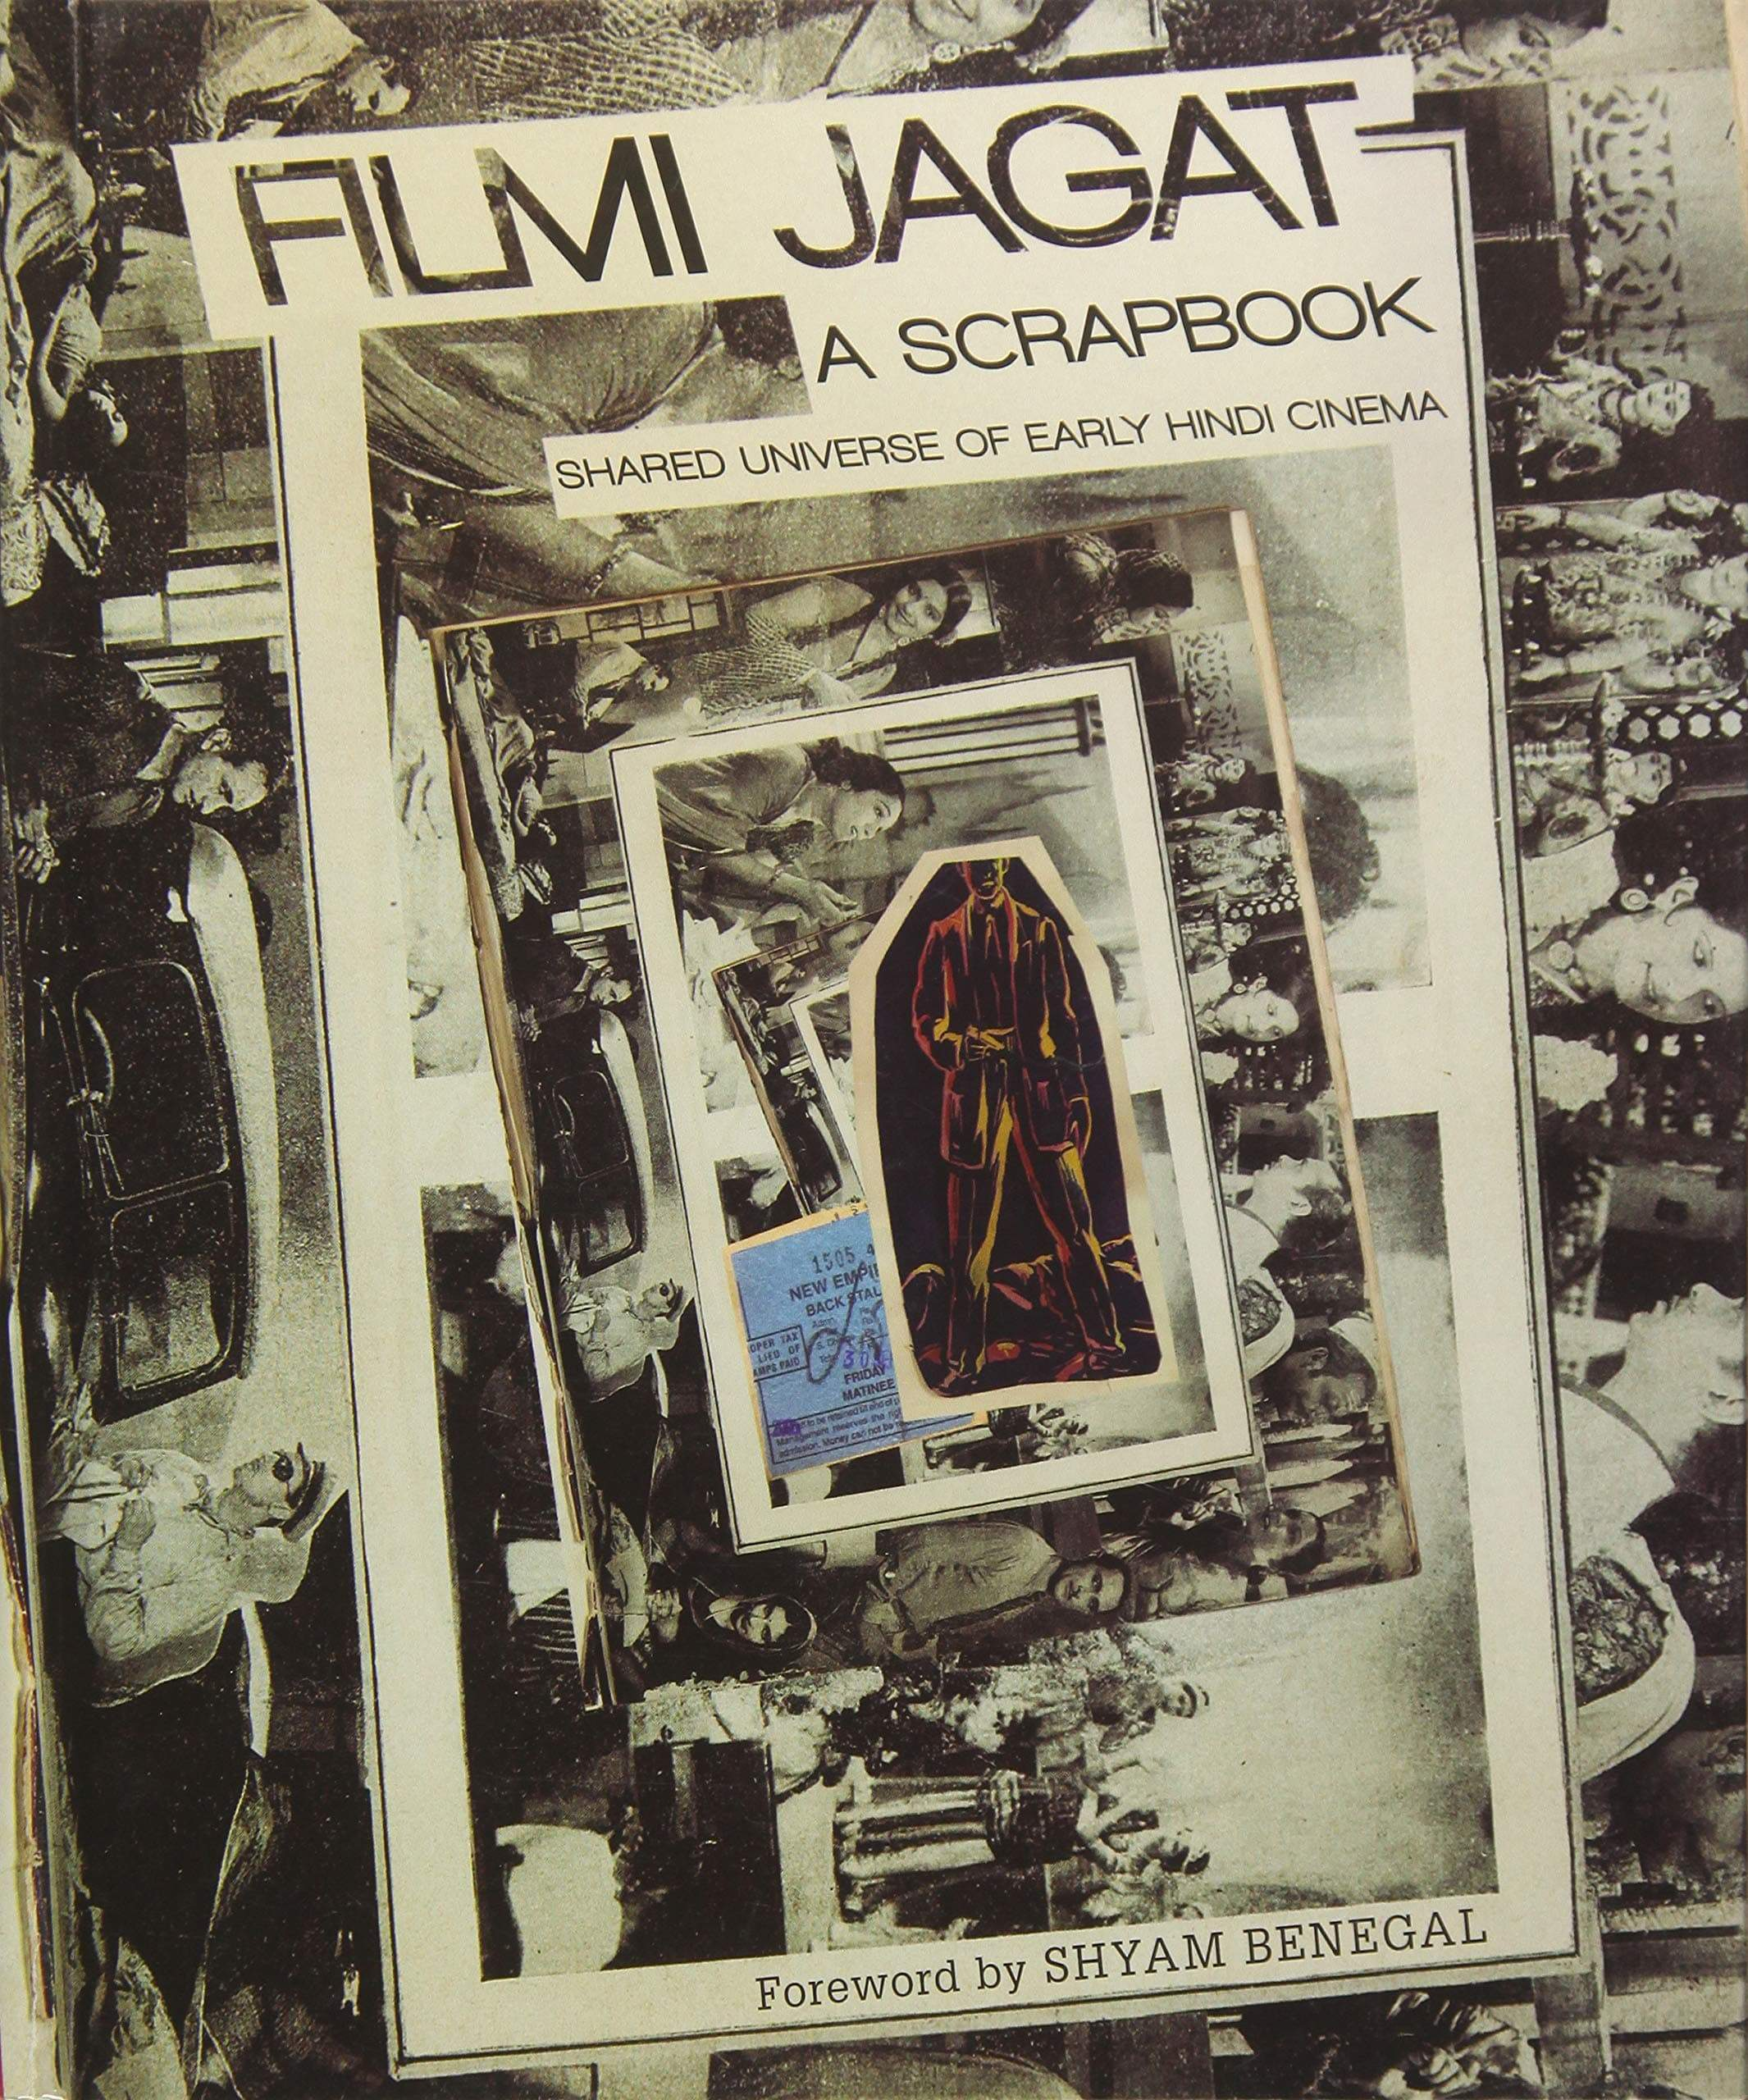 Filmi Jagat: A Scrapbook: Shared Universe of Early Hindi Cinema